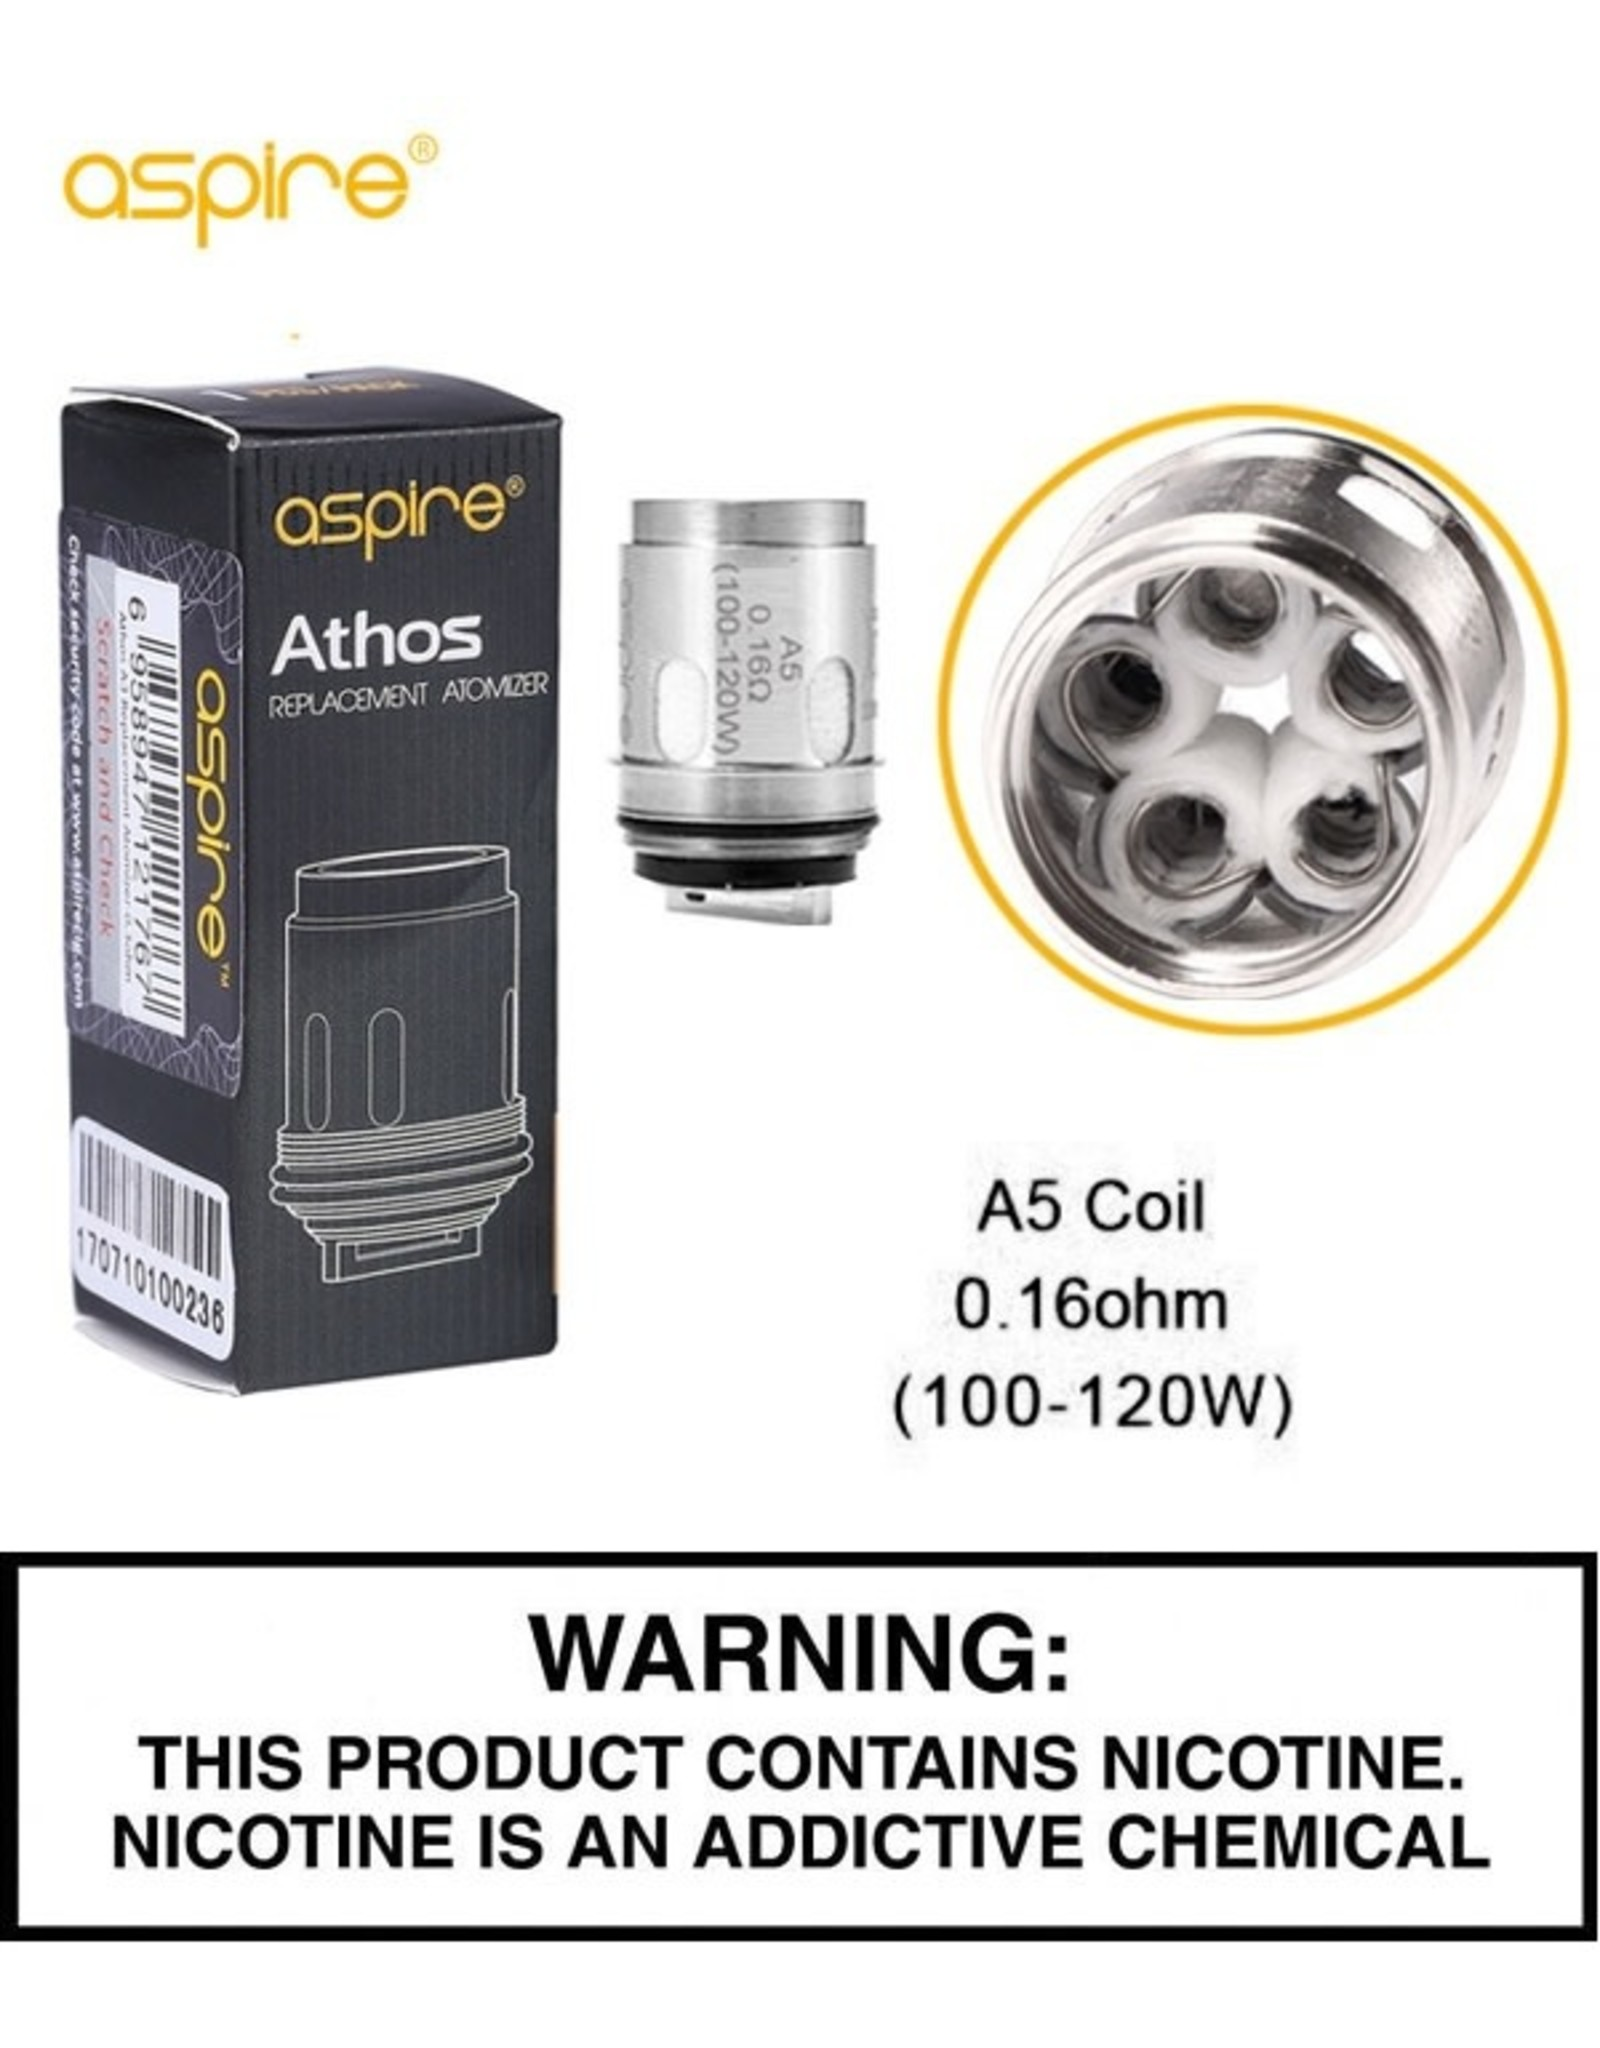 Aspire Aspire Athos Replacement Coil - Single